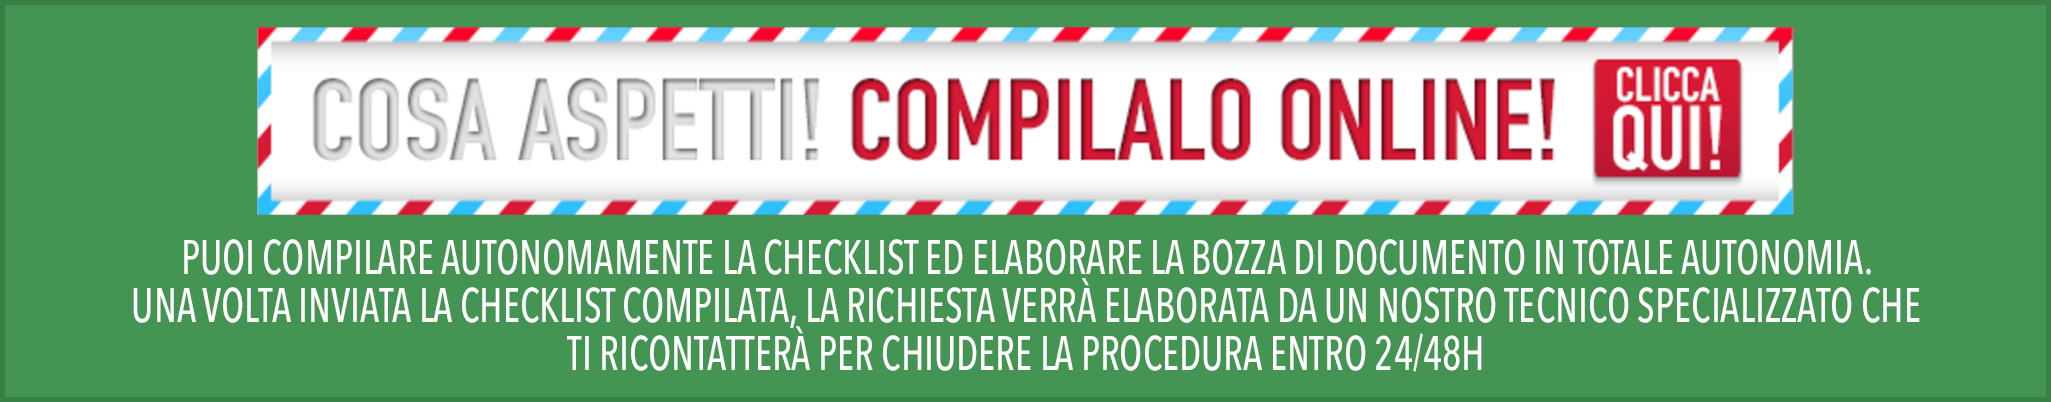 compila la checklist del documento